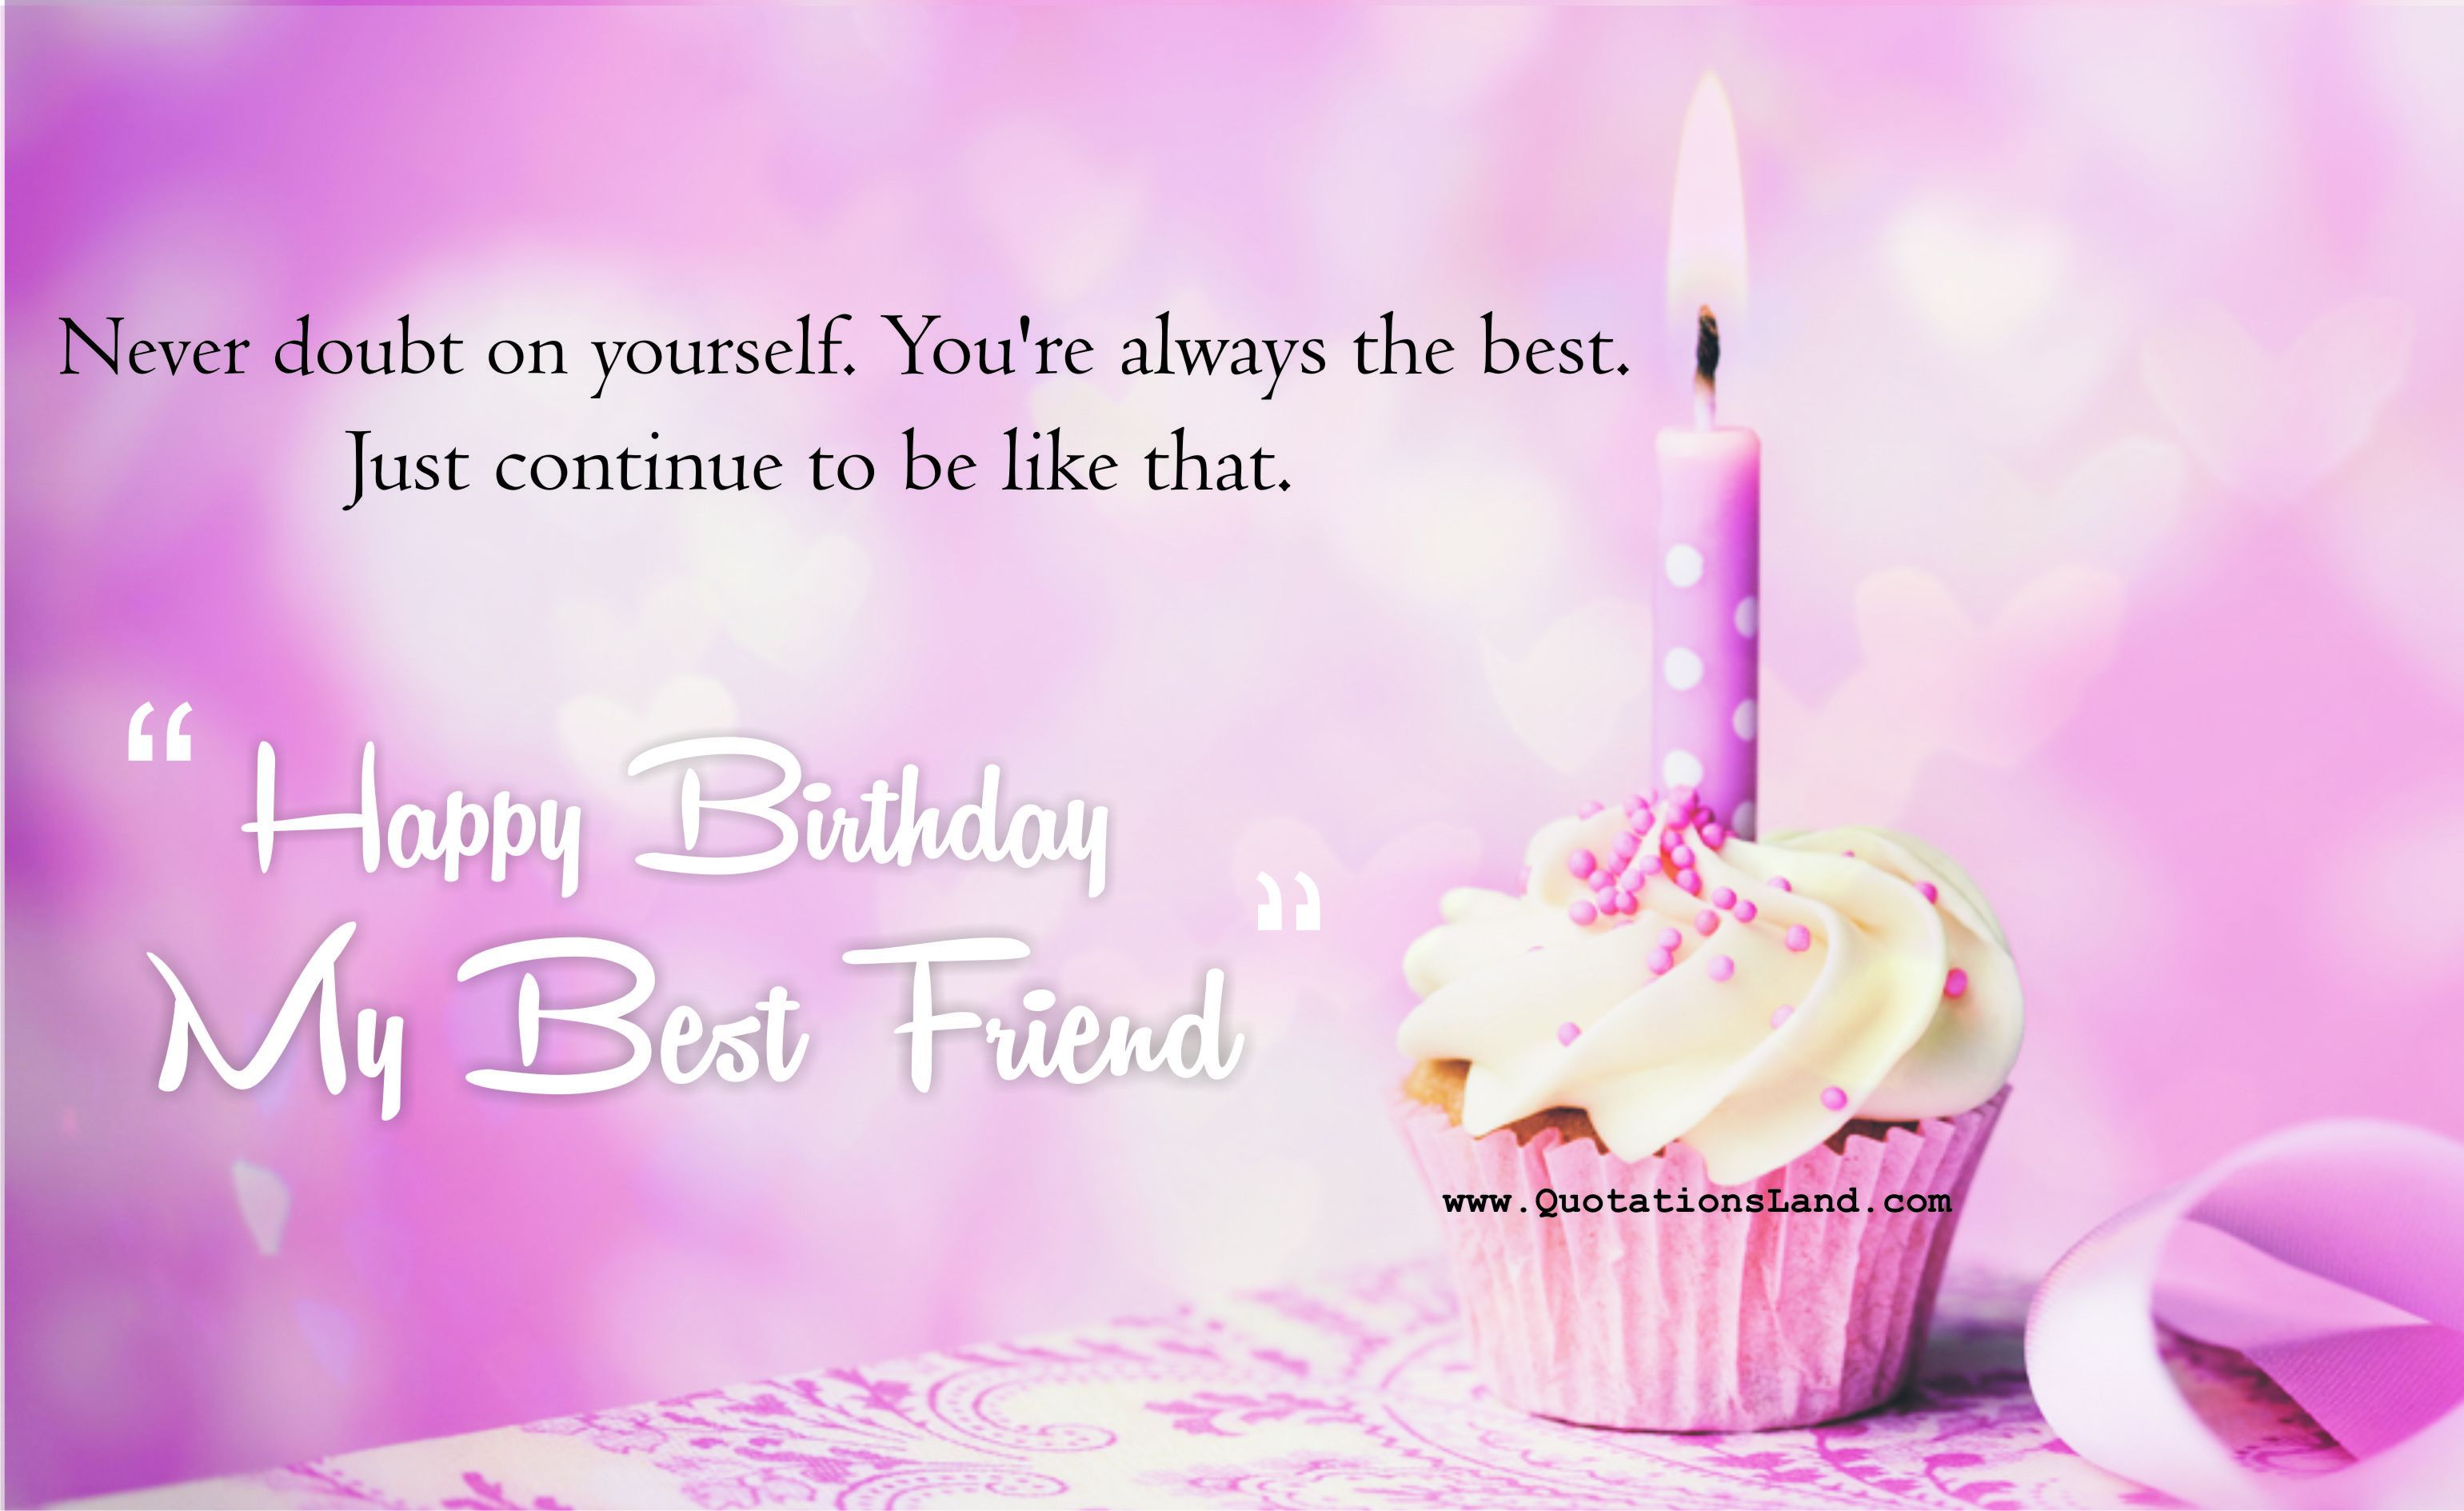 Happy birthday to my christian sister buscar con google happy birthday my best friend happy birthday happy birthday wishes happy birthday quotes happy birthday images happy birthday pictures kristyandbryce Gallery